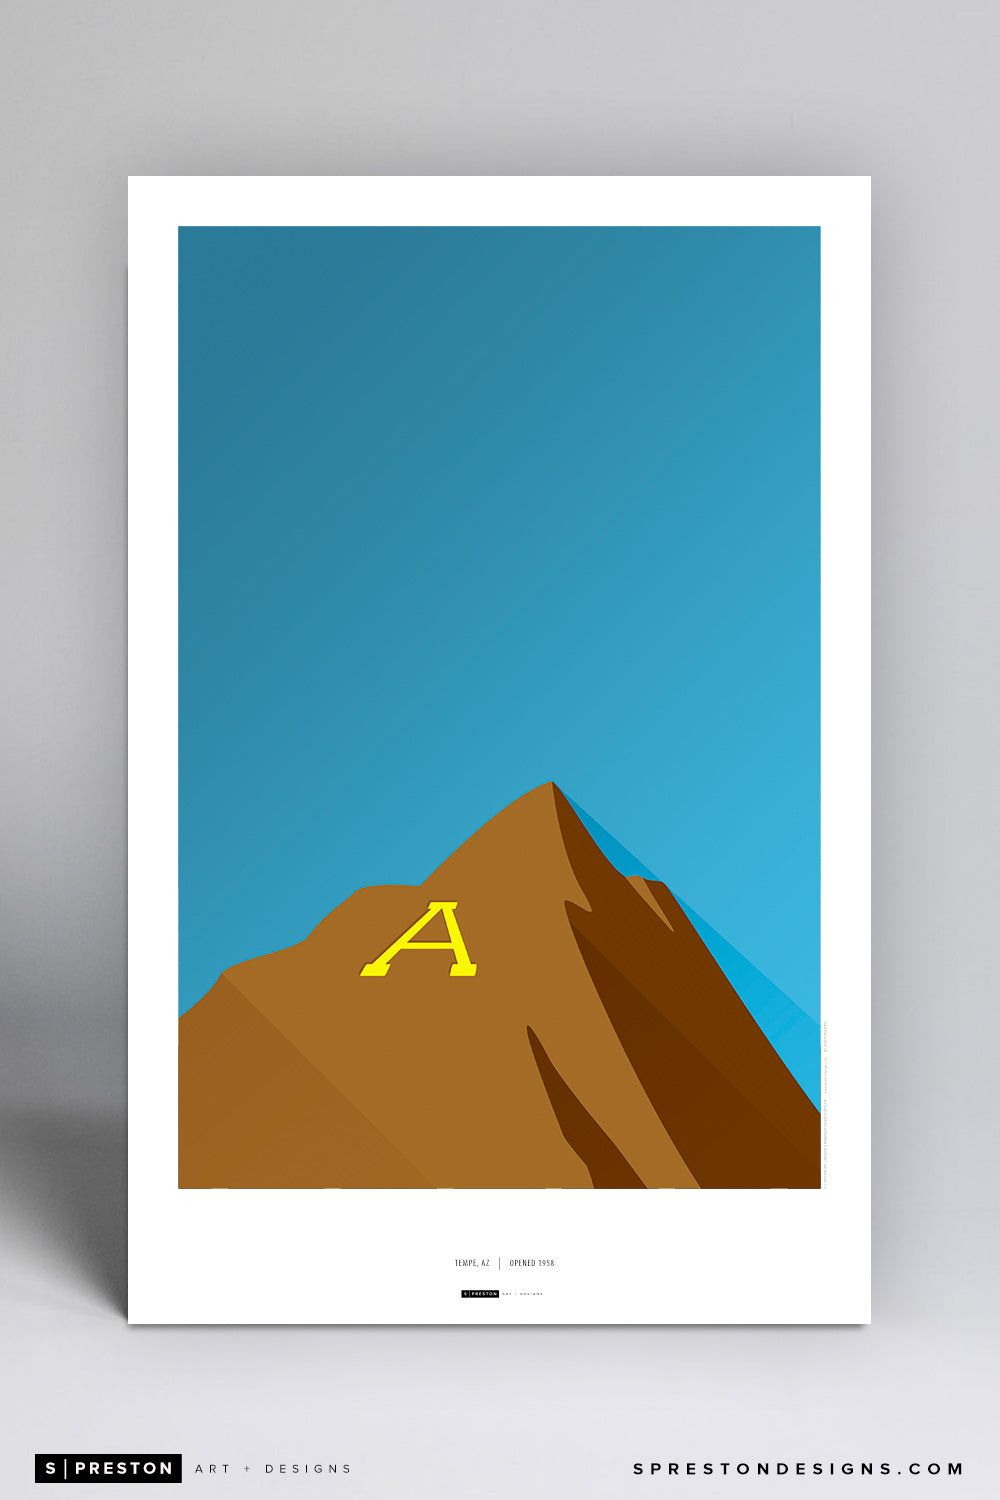 Minimalist Sun Devil Stadium Poster Print Arizona State University - S Preston